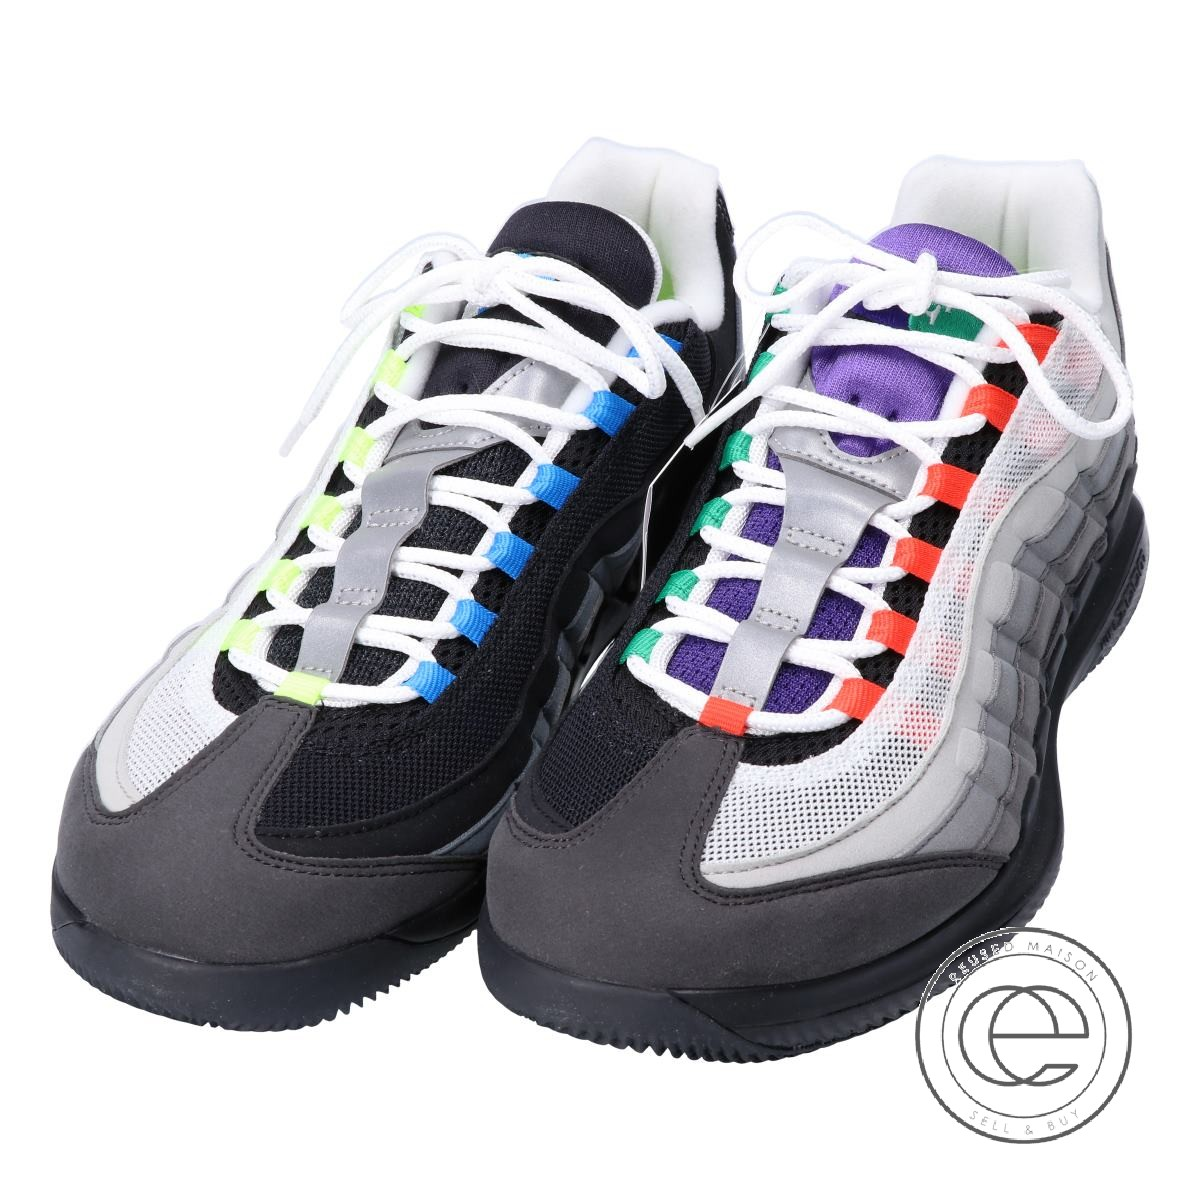 the best attitude dc3b8 49af0 NIKE Nike AO8759-077 ZOOM VAPOR RF X AIR MAX 95 ズームヴェイパーロジャーフェデラー X Air Max  95 sneakers 28 BLACK/SAFETY ORANGE-VOLT men